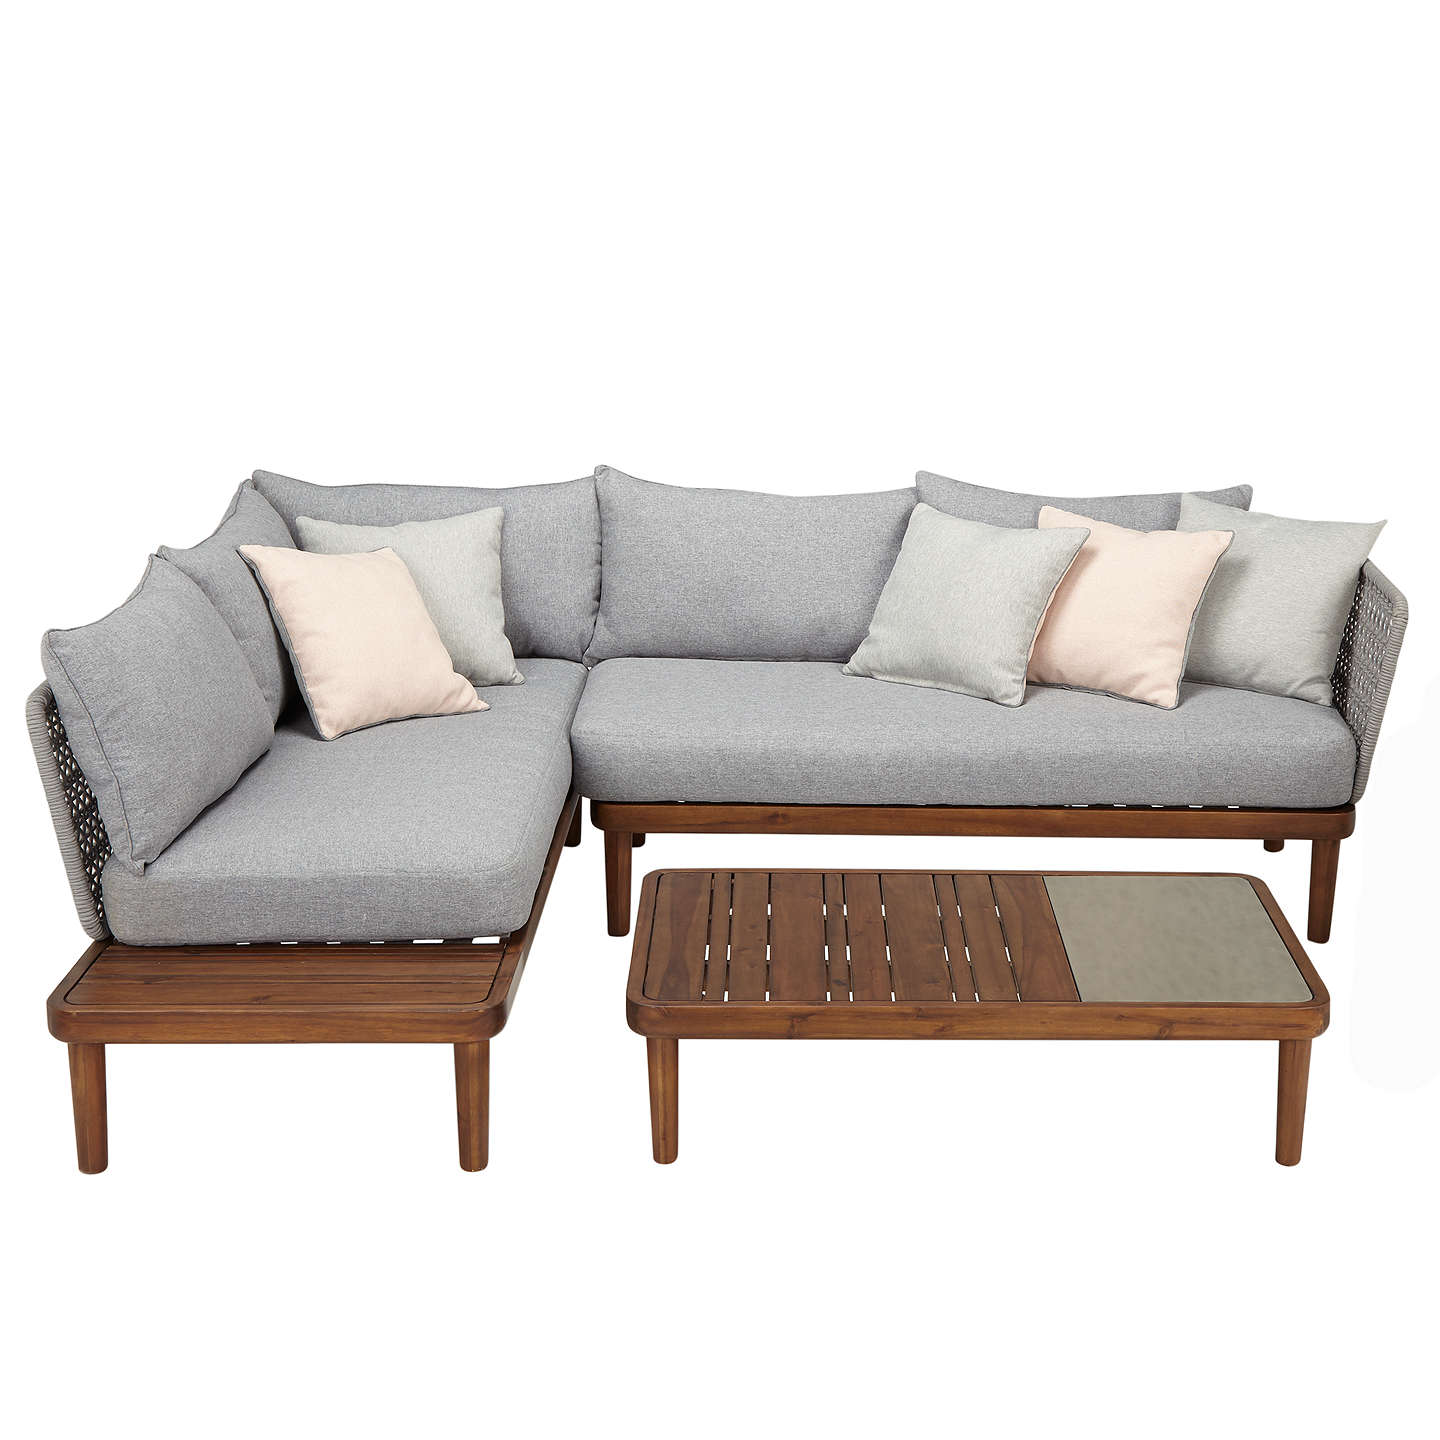 Design project by john lewis lounging chaise sofa for Sofa table john lewis